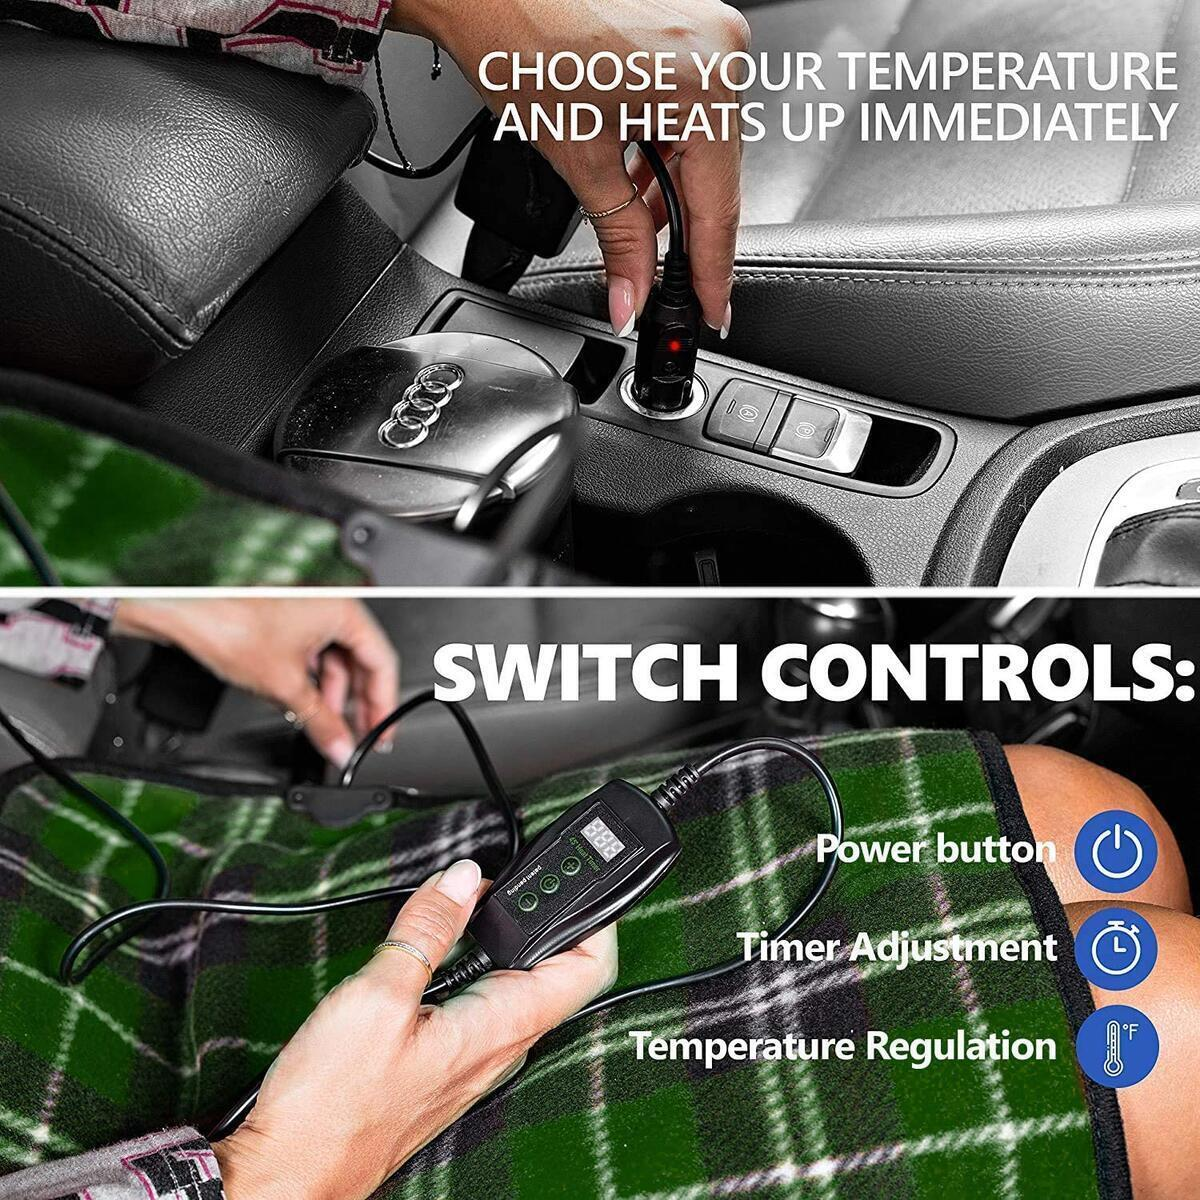 Zento Deals Heated Travel Car Pad – 12V Green Plaid Premium Quality Electric Warm Pad, Relieves Back Pain, Fleece Material, Perfect for Travelling and Winter Season, Non-Flammable